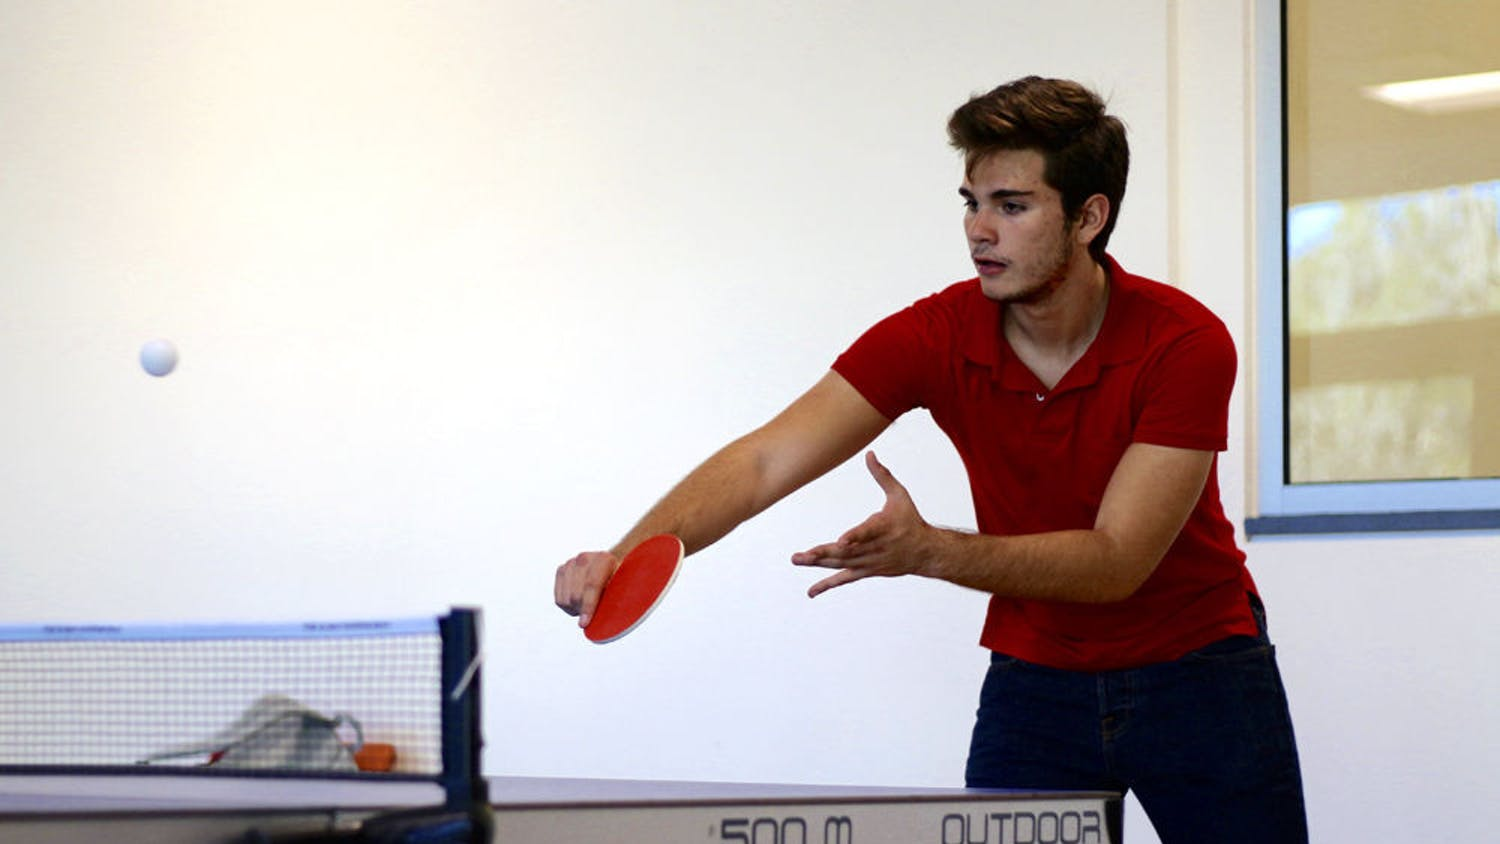 Esteban Siles, an 18-year-old industrial engineering freshman, plays a game of table tennis with his friend Carlos Ancaten in the recently opened Reitz Union Game Room on Tuesday afternoon.